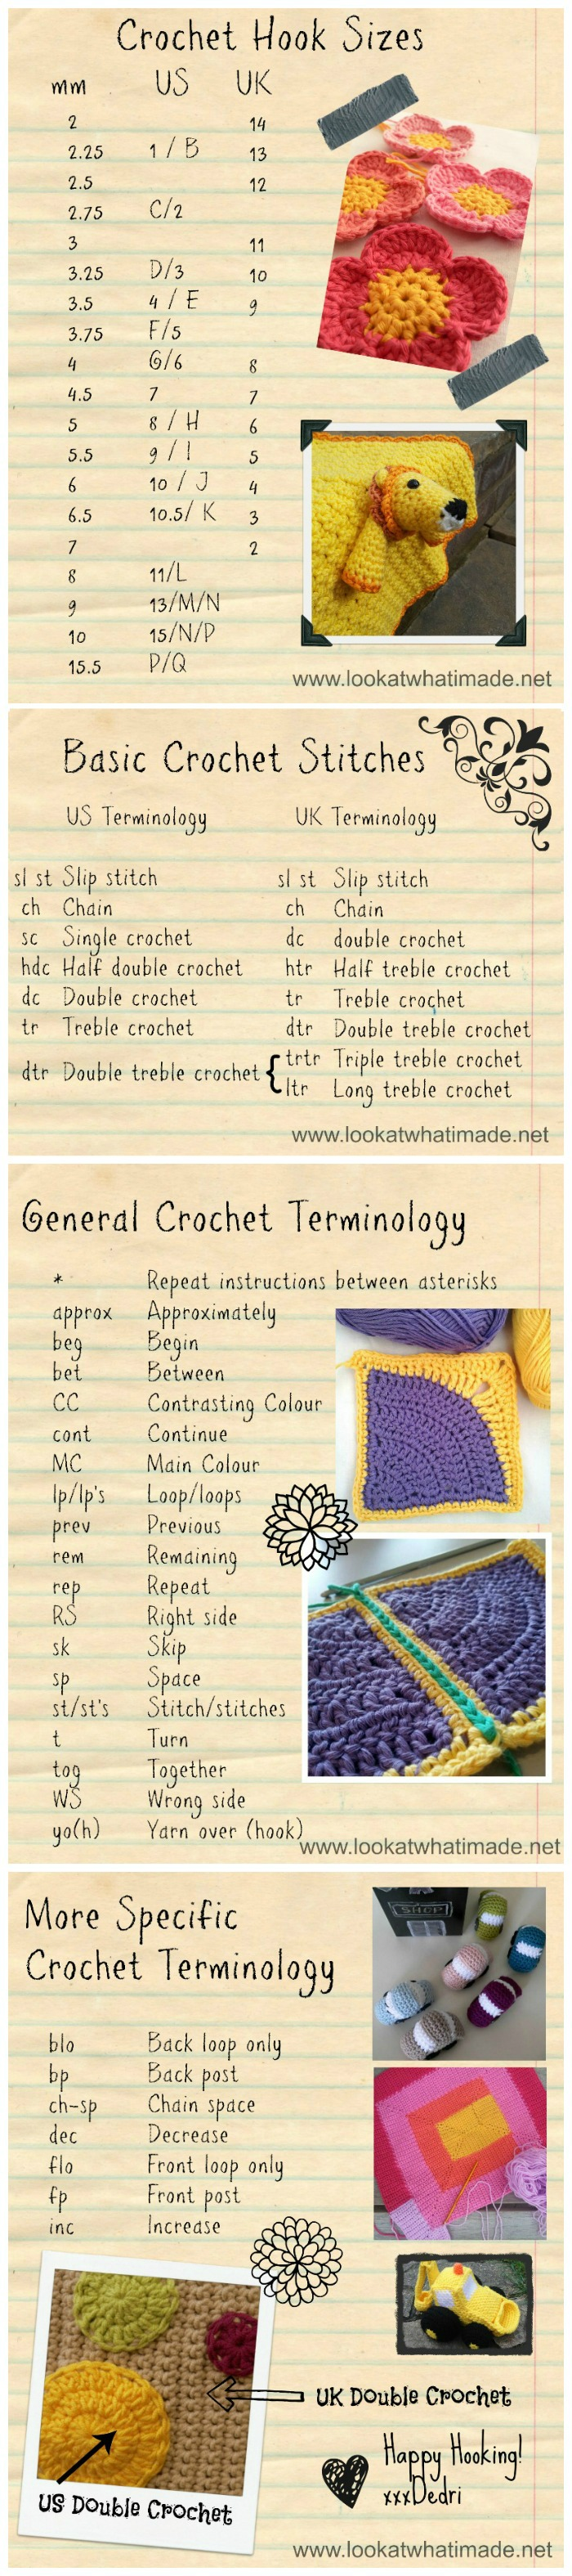 Crochet Hooks Sizes and Abbreviations